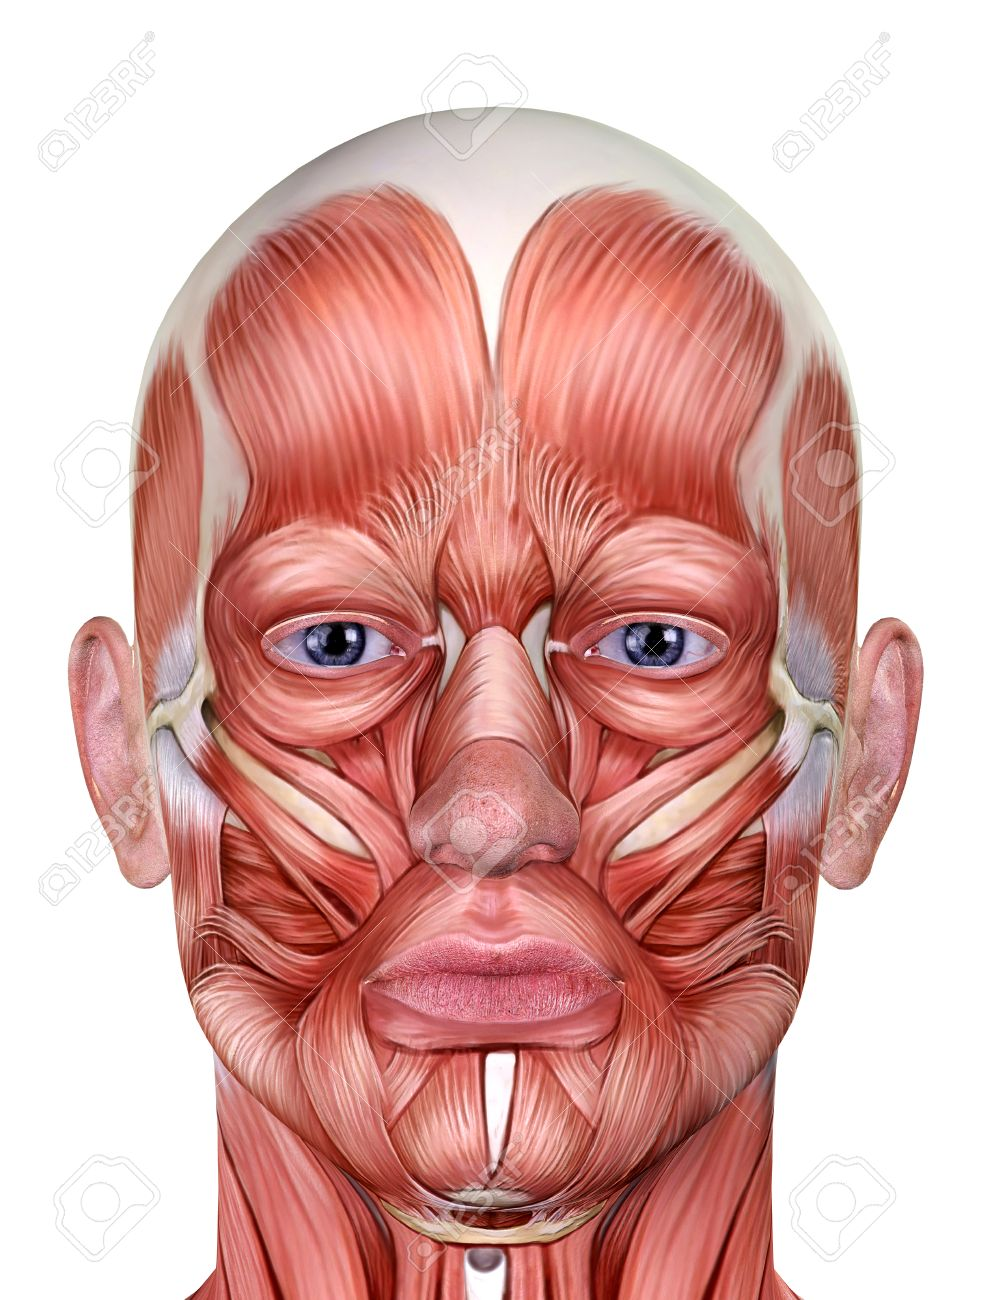 Male Face Muscles Anatomy Isolated On White Stock Photo, Picture And ...